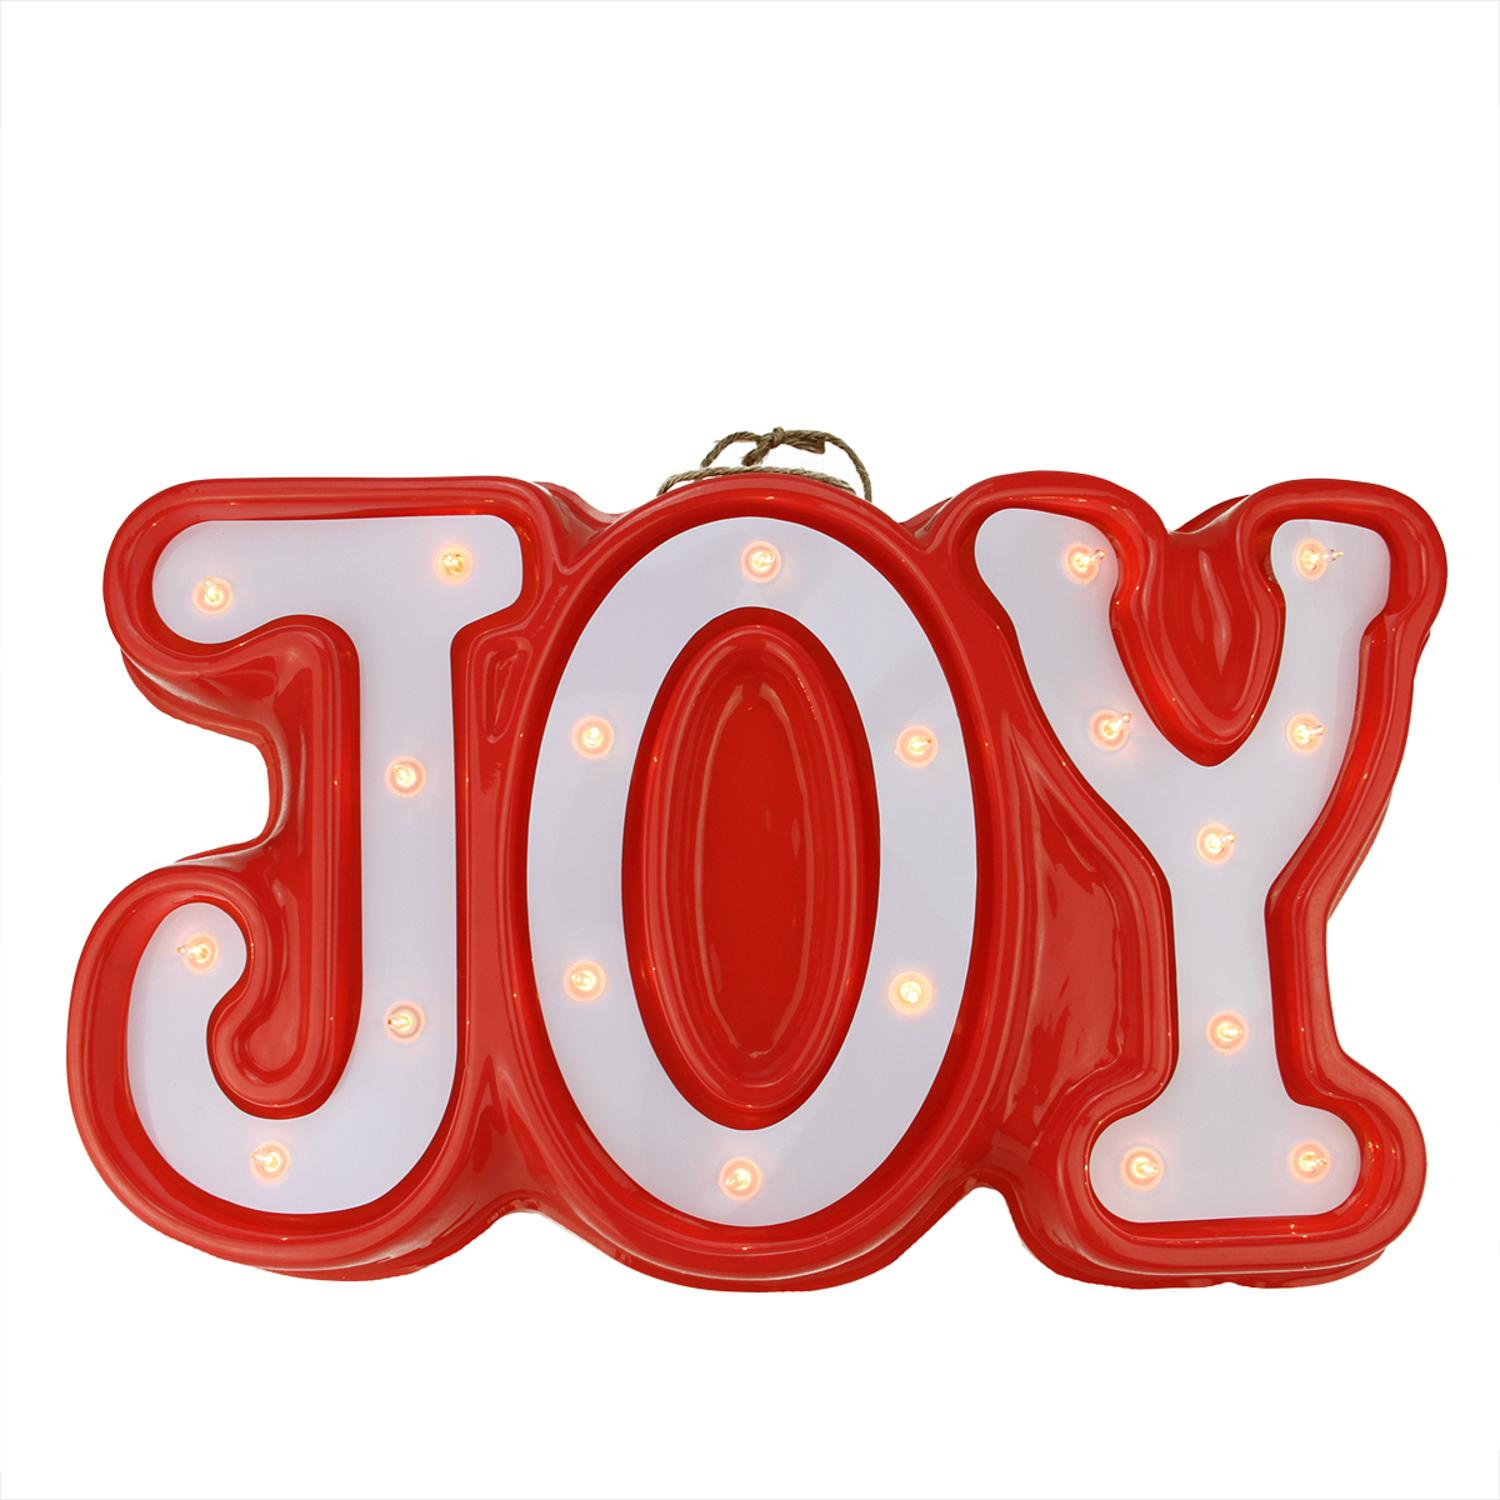 Northlight Lighted JOY Hanging Christmas Window or Wall Decoration